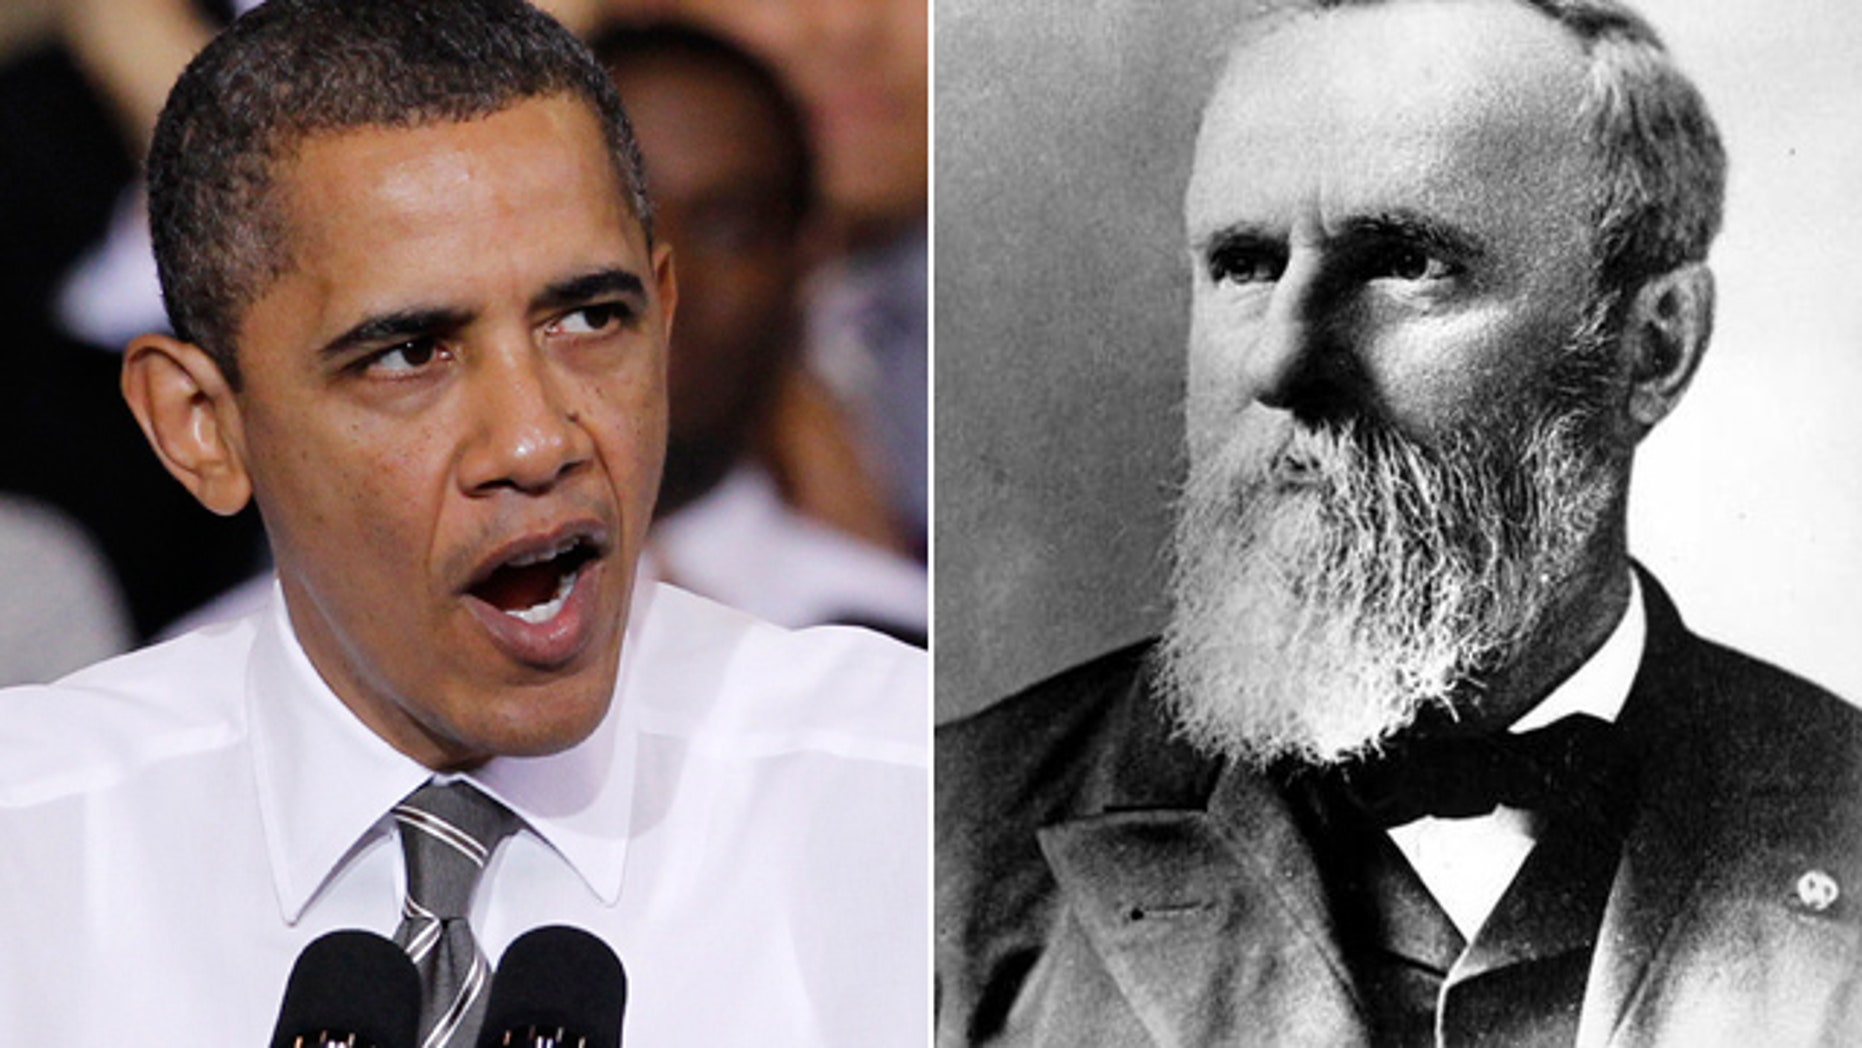 President Obama wasn't too kind to one of his GOP predecessors, President Rutherford B. Hayes.